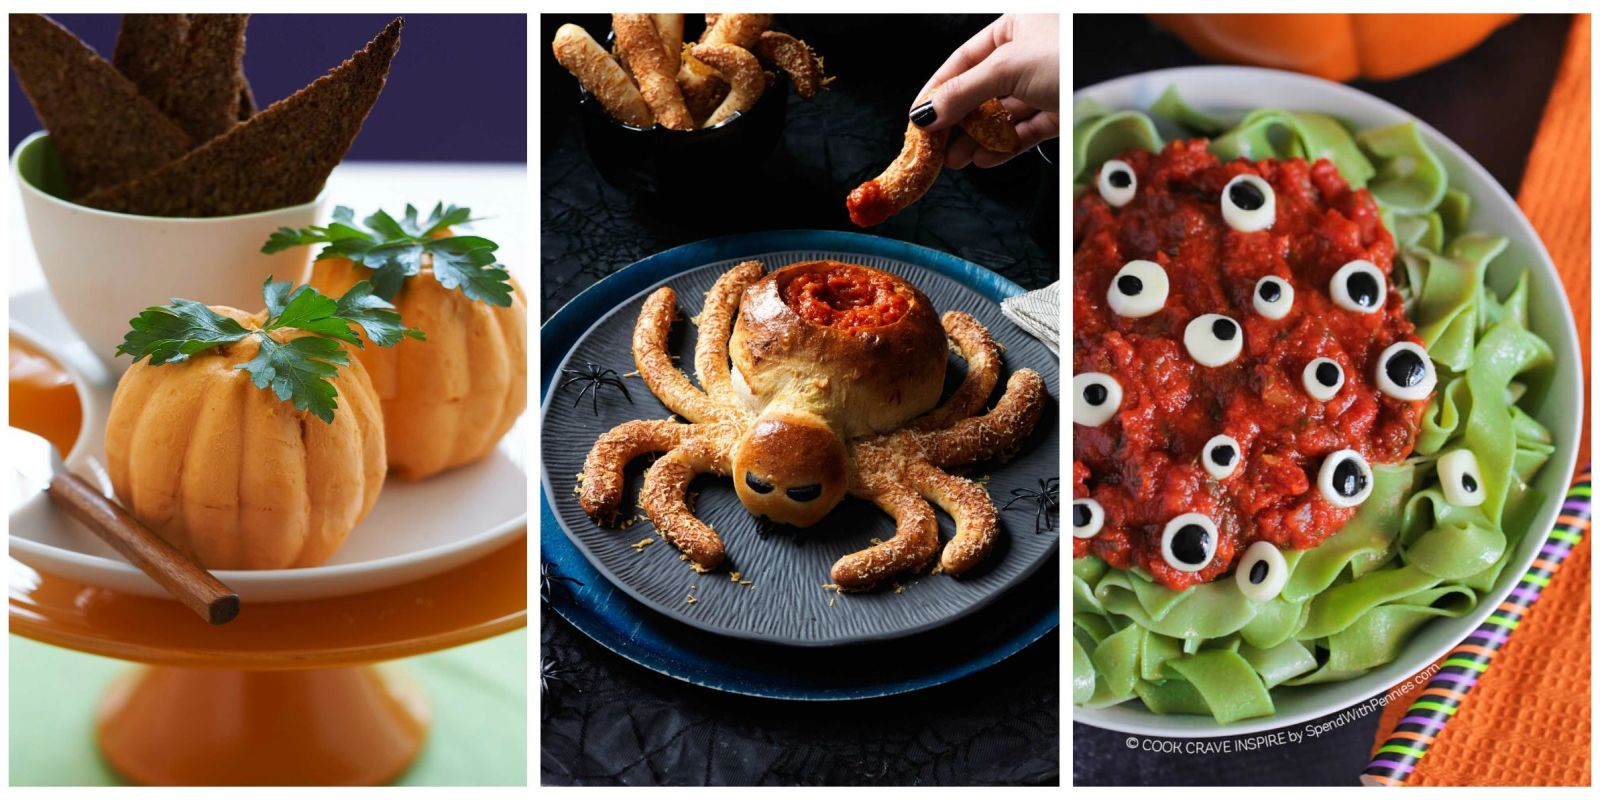 25 Spooky Halloween Dinner Ideas Best Recipes For